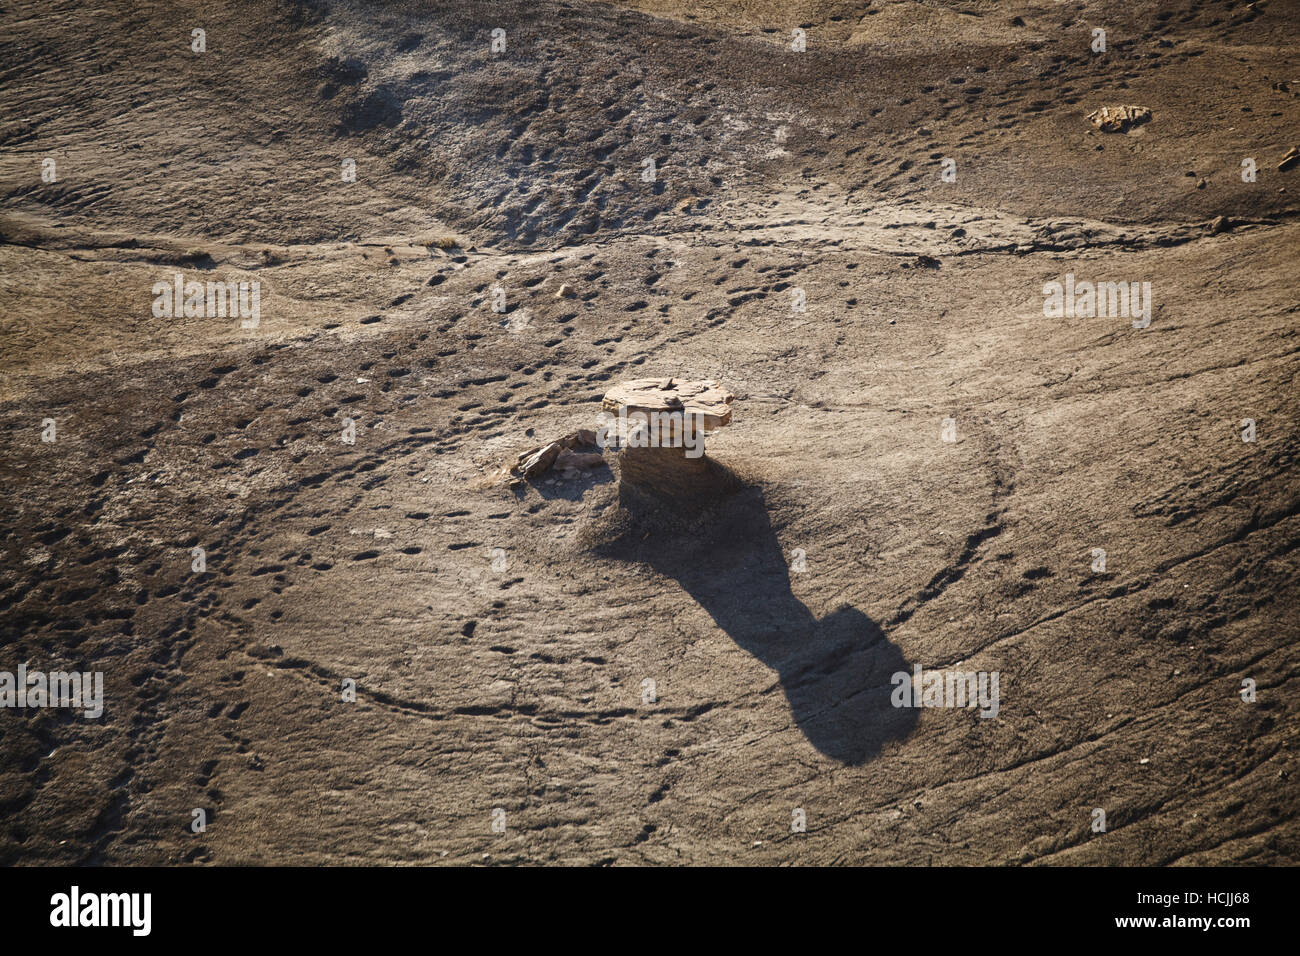 Cattle and horse tracks encircle a stone hoodoo in the badlands near Factory Butte, Utah. - Stock Image